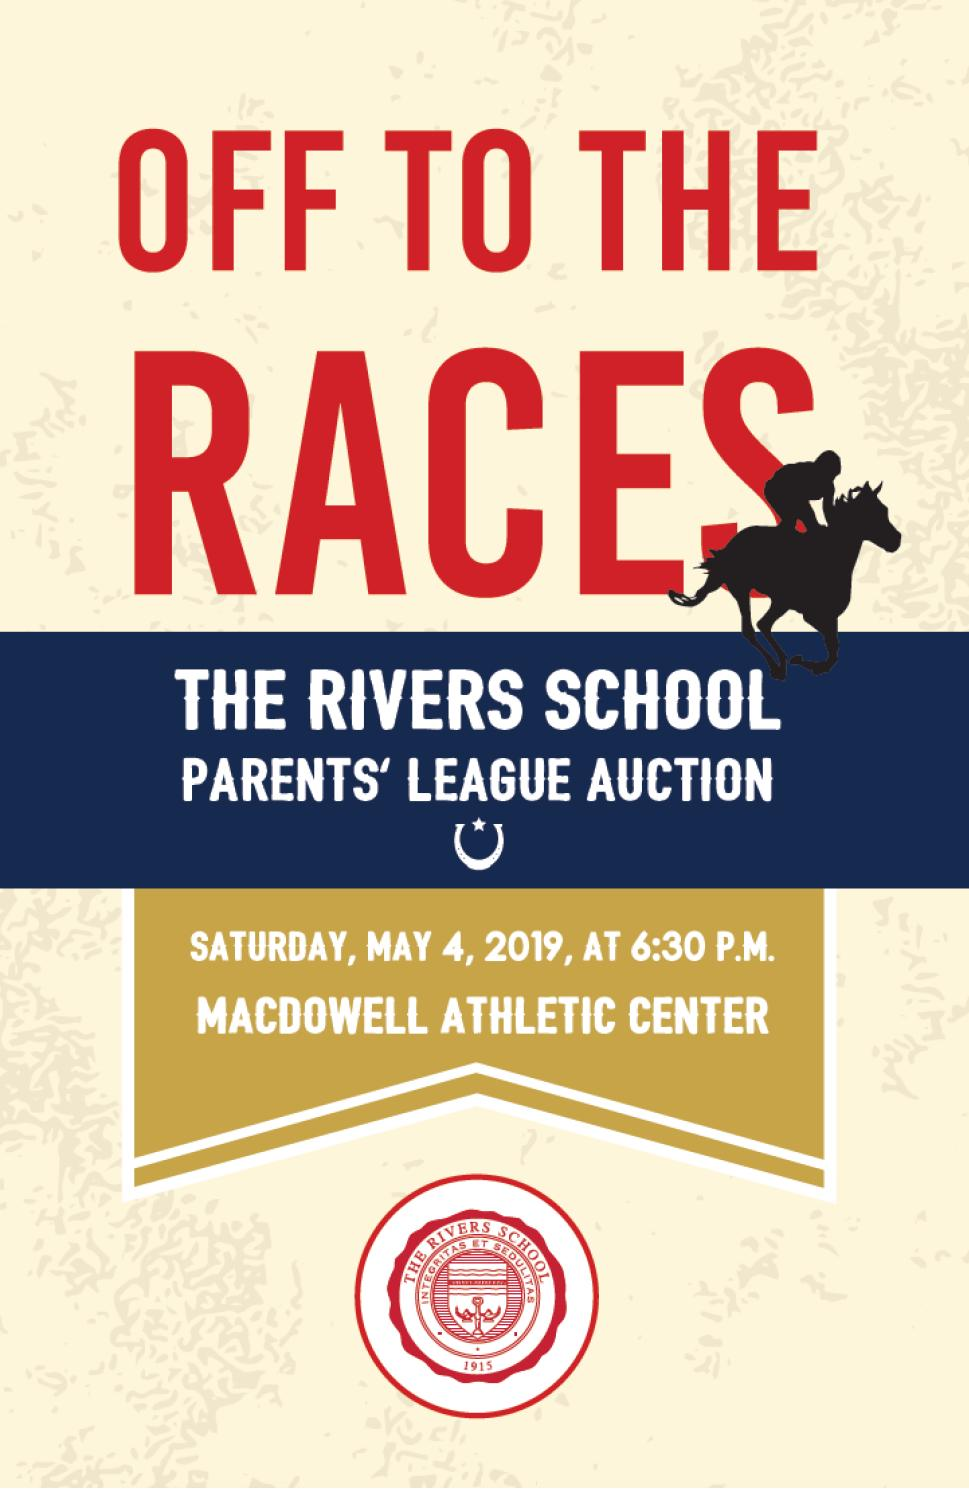 4b7f3e131 The Rivers School Auction 2019 by The Rivers School - issuu